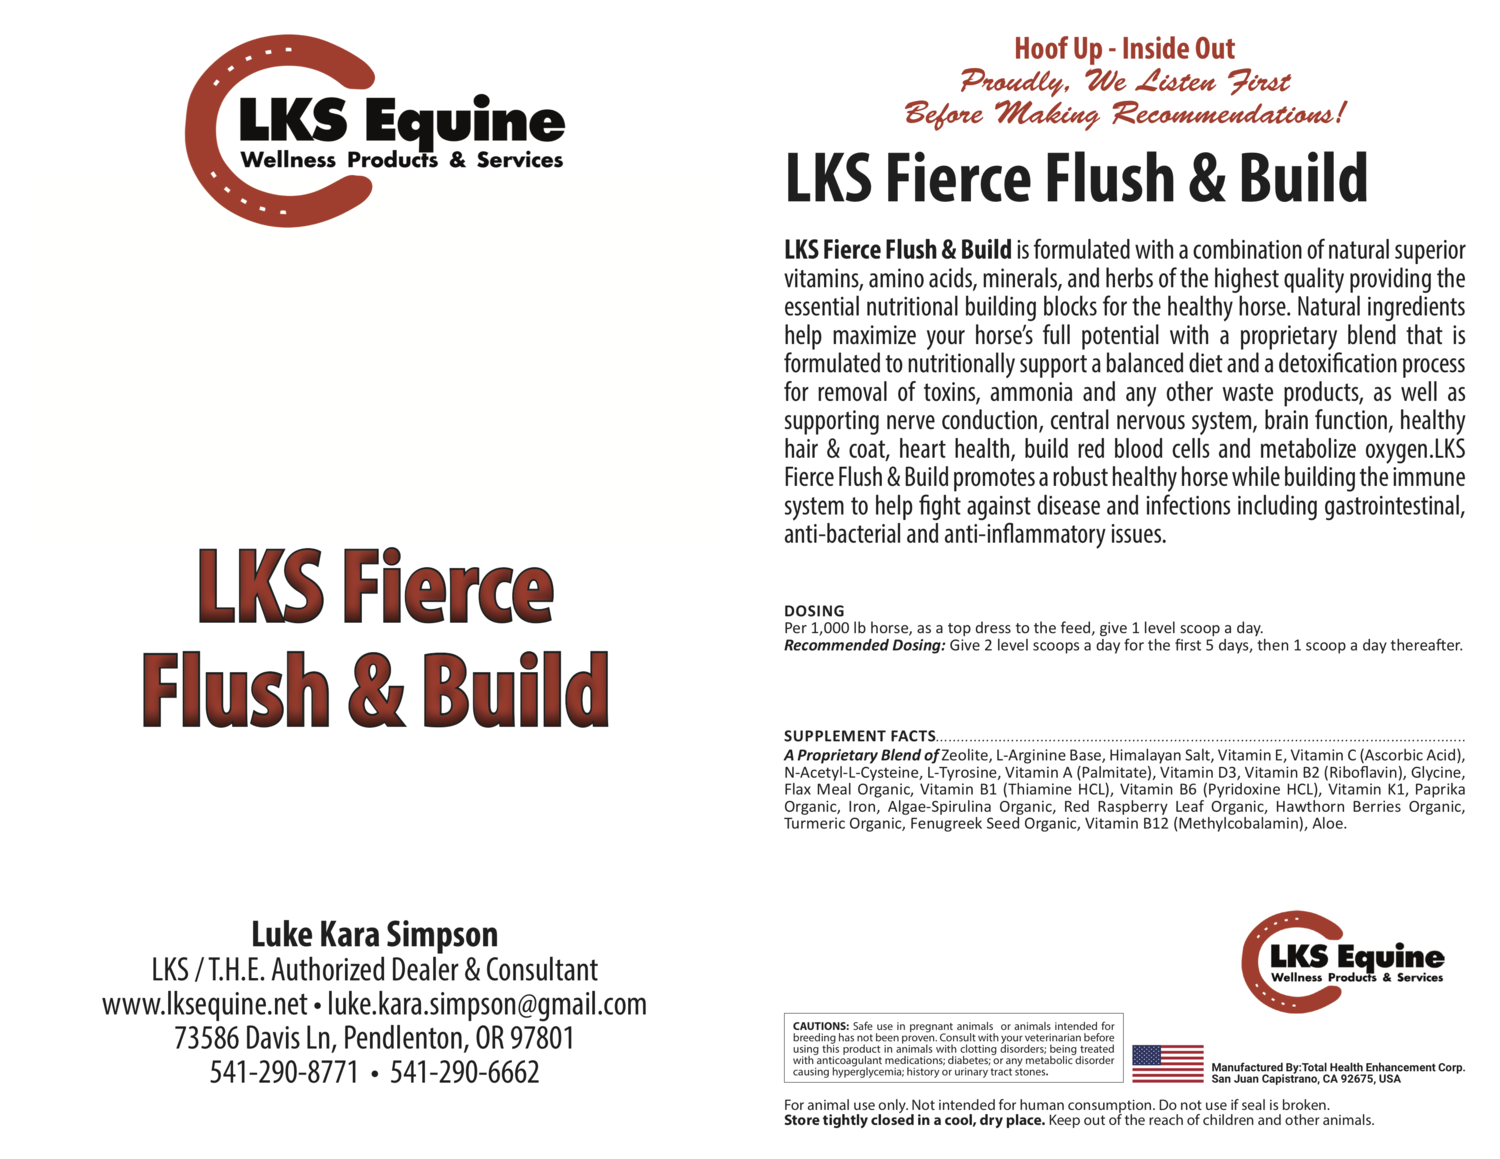 LKS Fierce Flush & Build